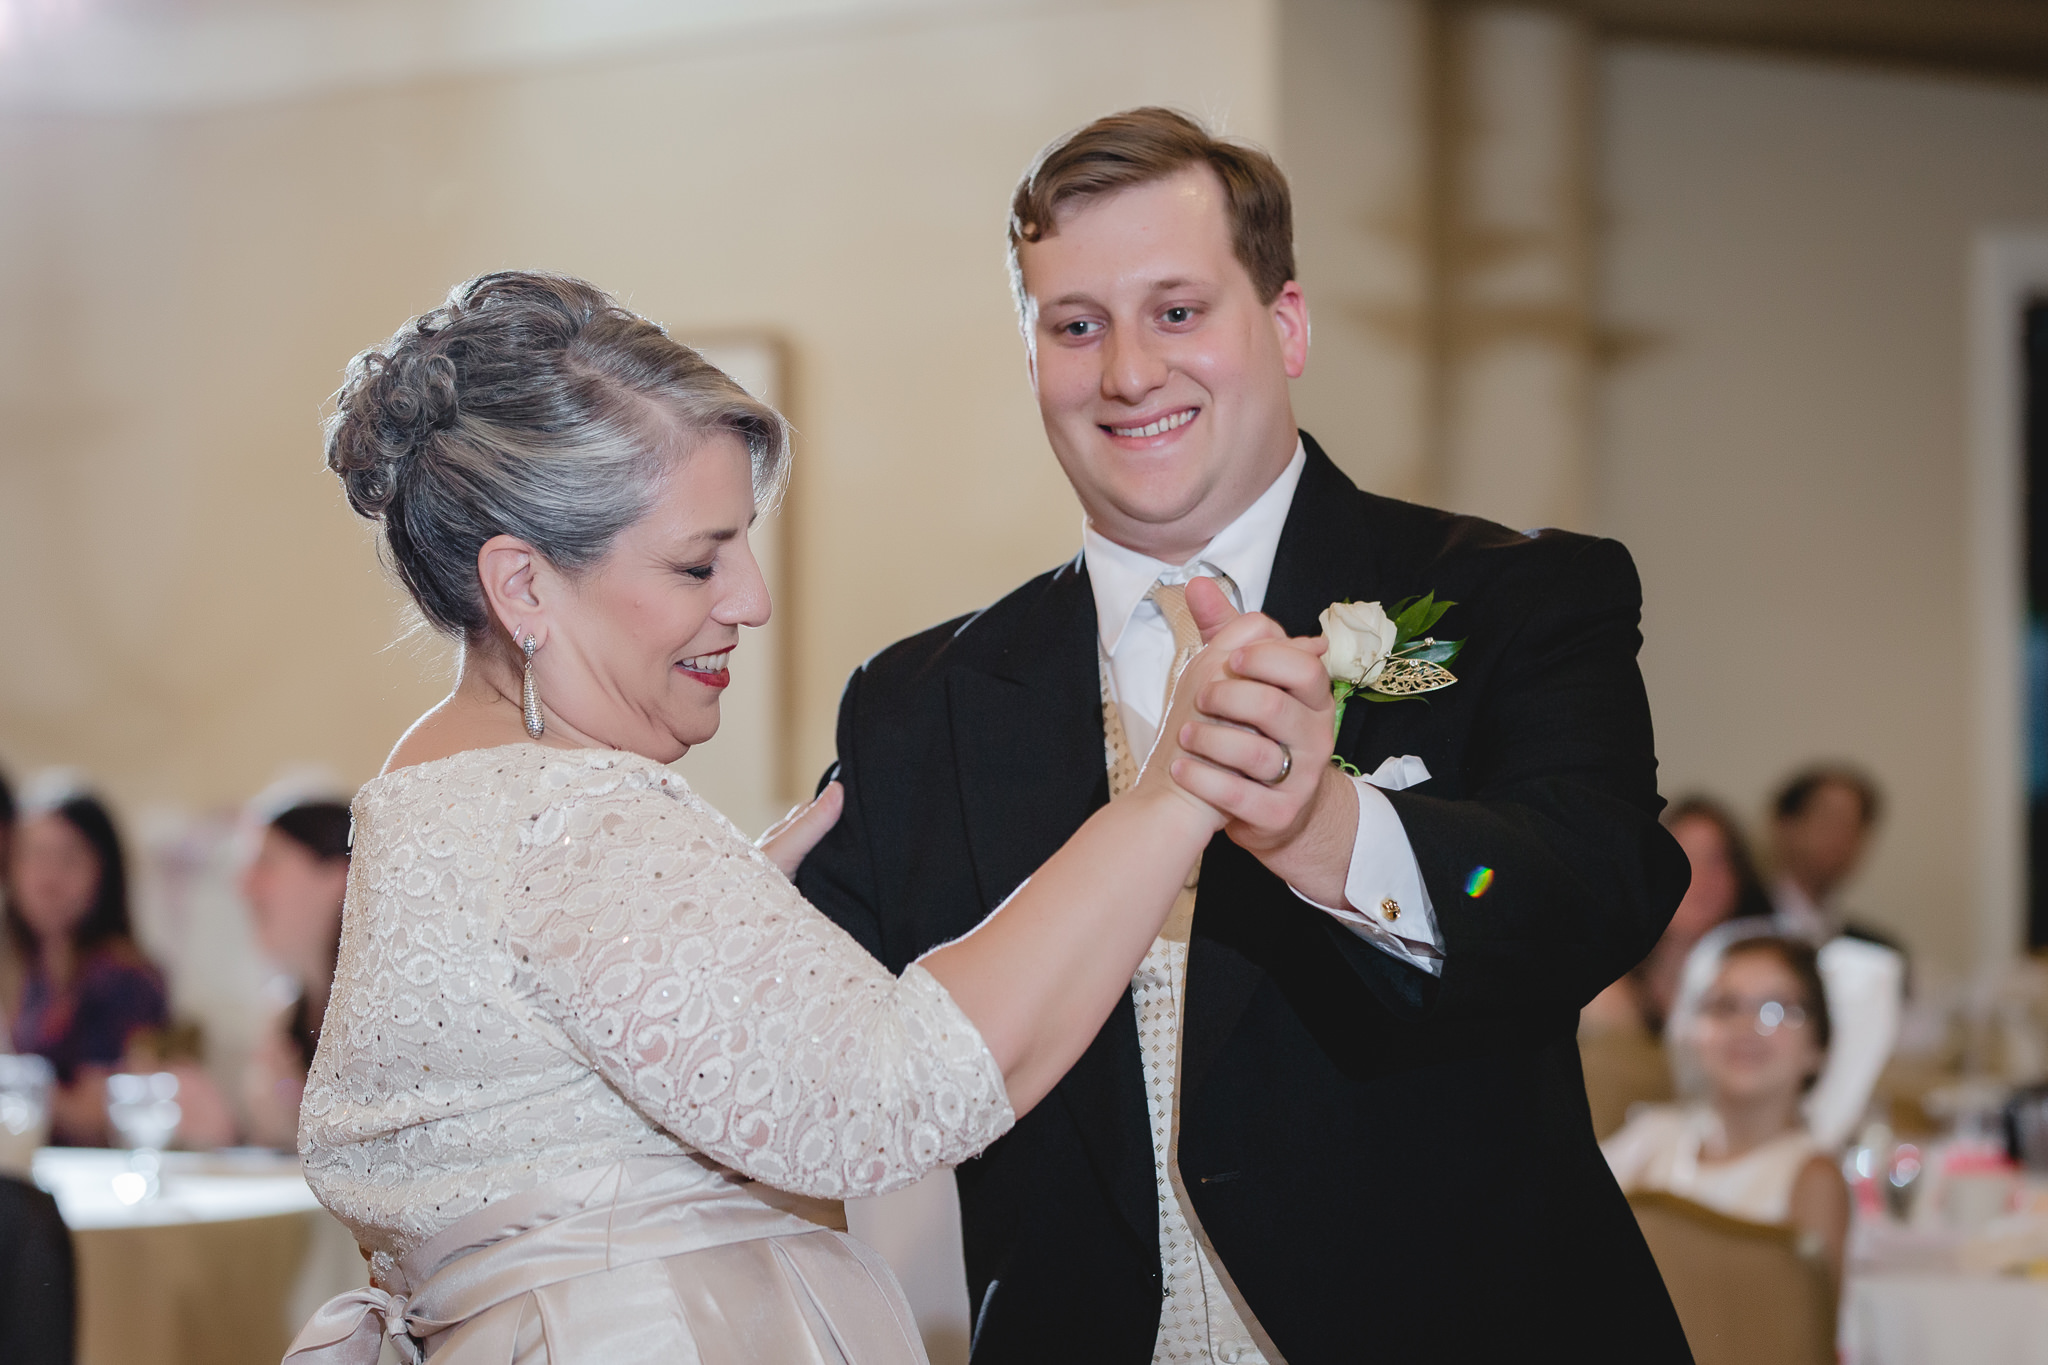 Mother-son dance at Shannopin Country Club wedding reception